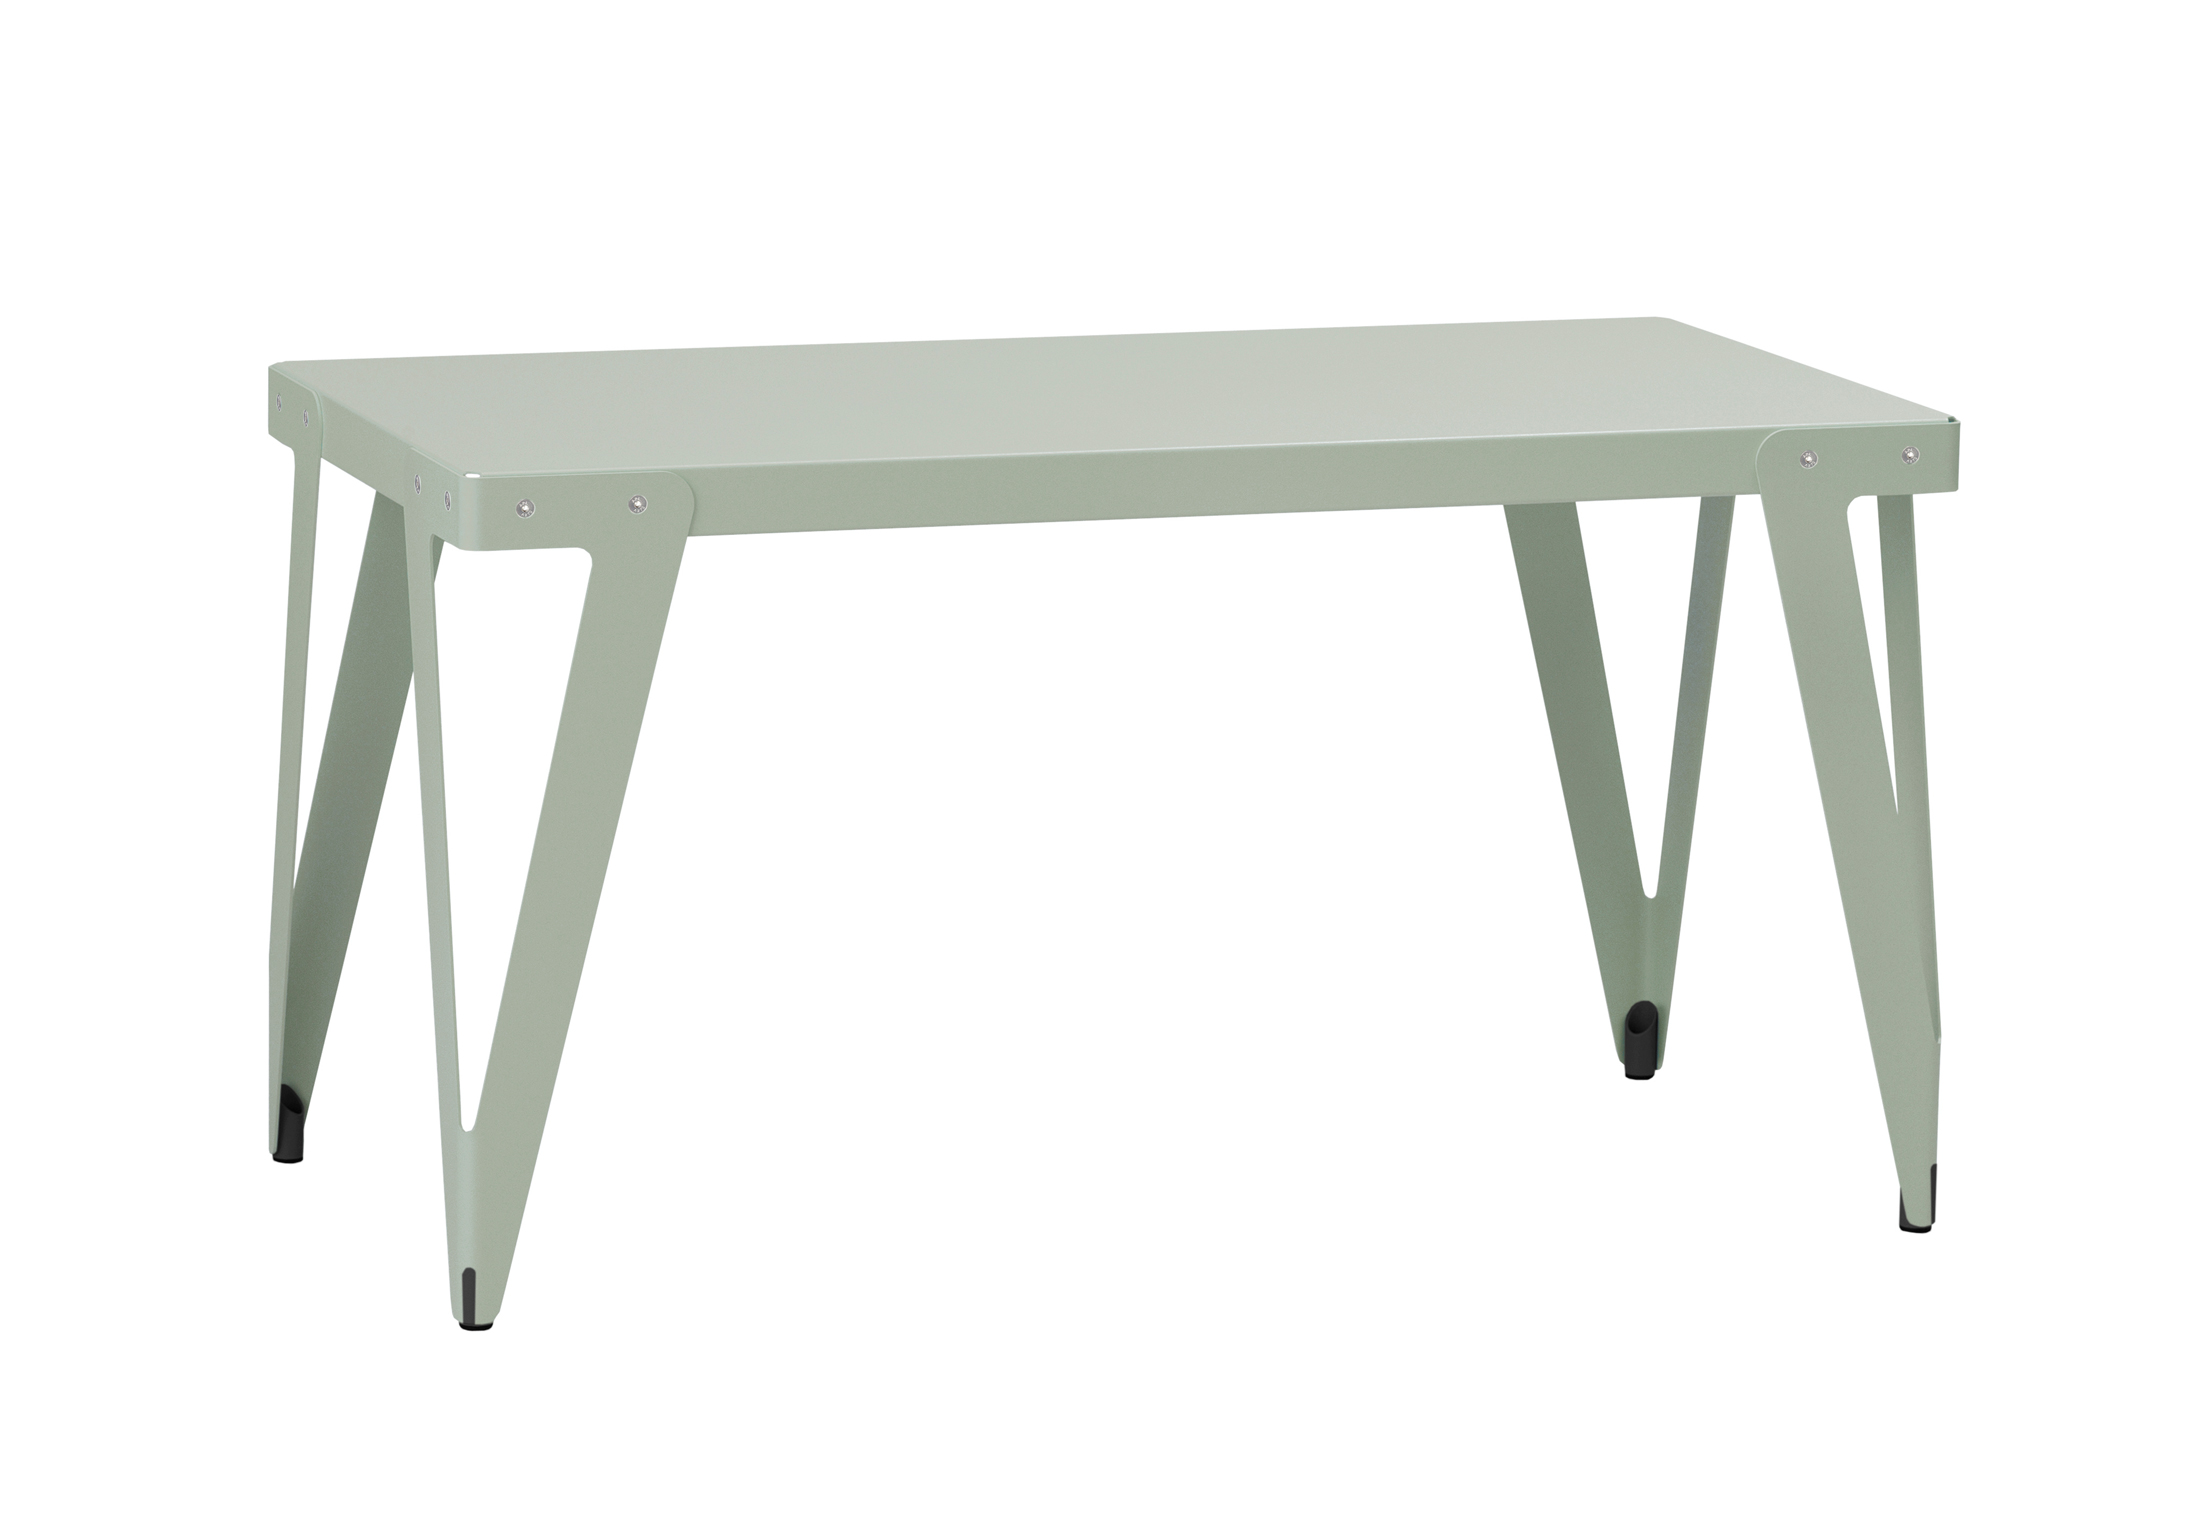 lloyd table outdoor by functionals stylepark rh stylepark com lloyd outdoor table lloyd outdoor chairs